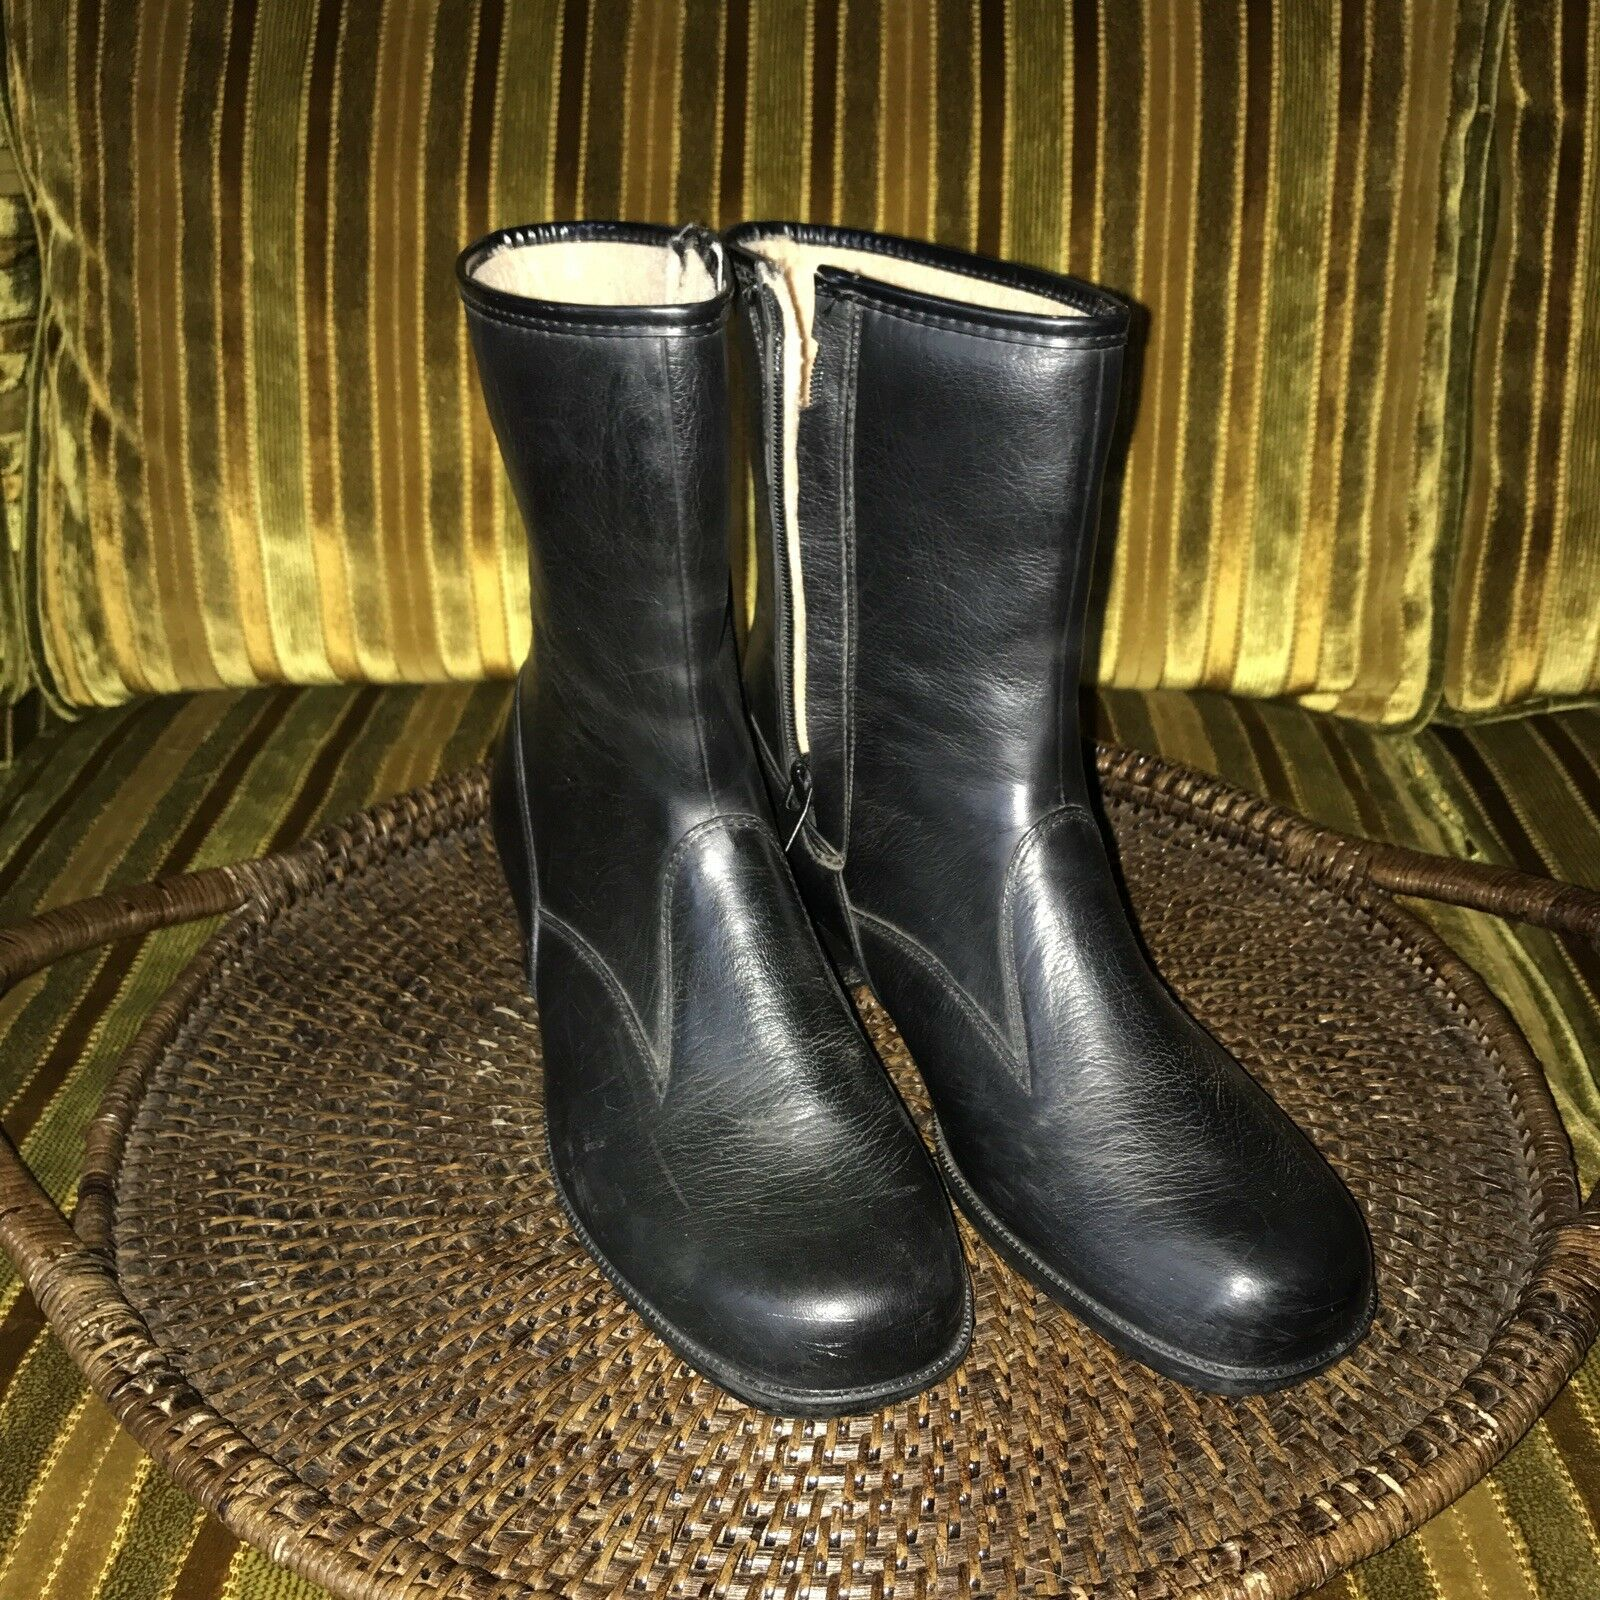 Vintage Rubber Boots With Fleece Lining